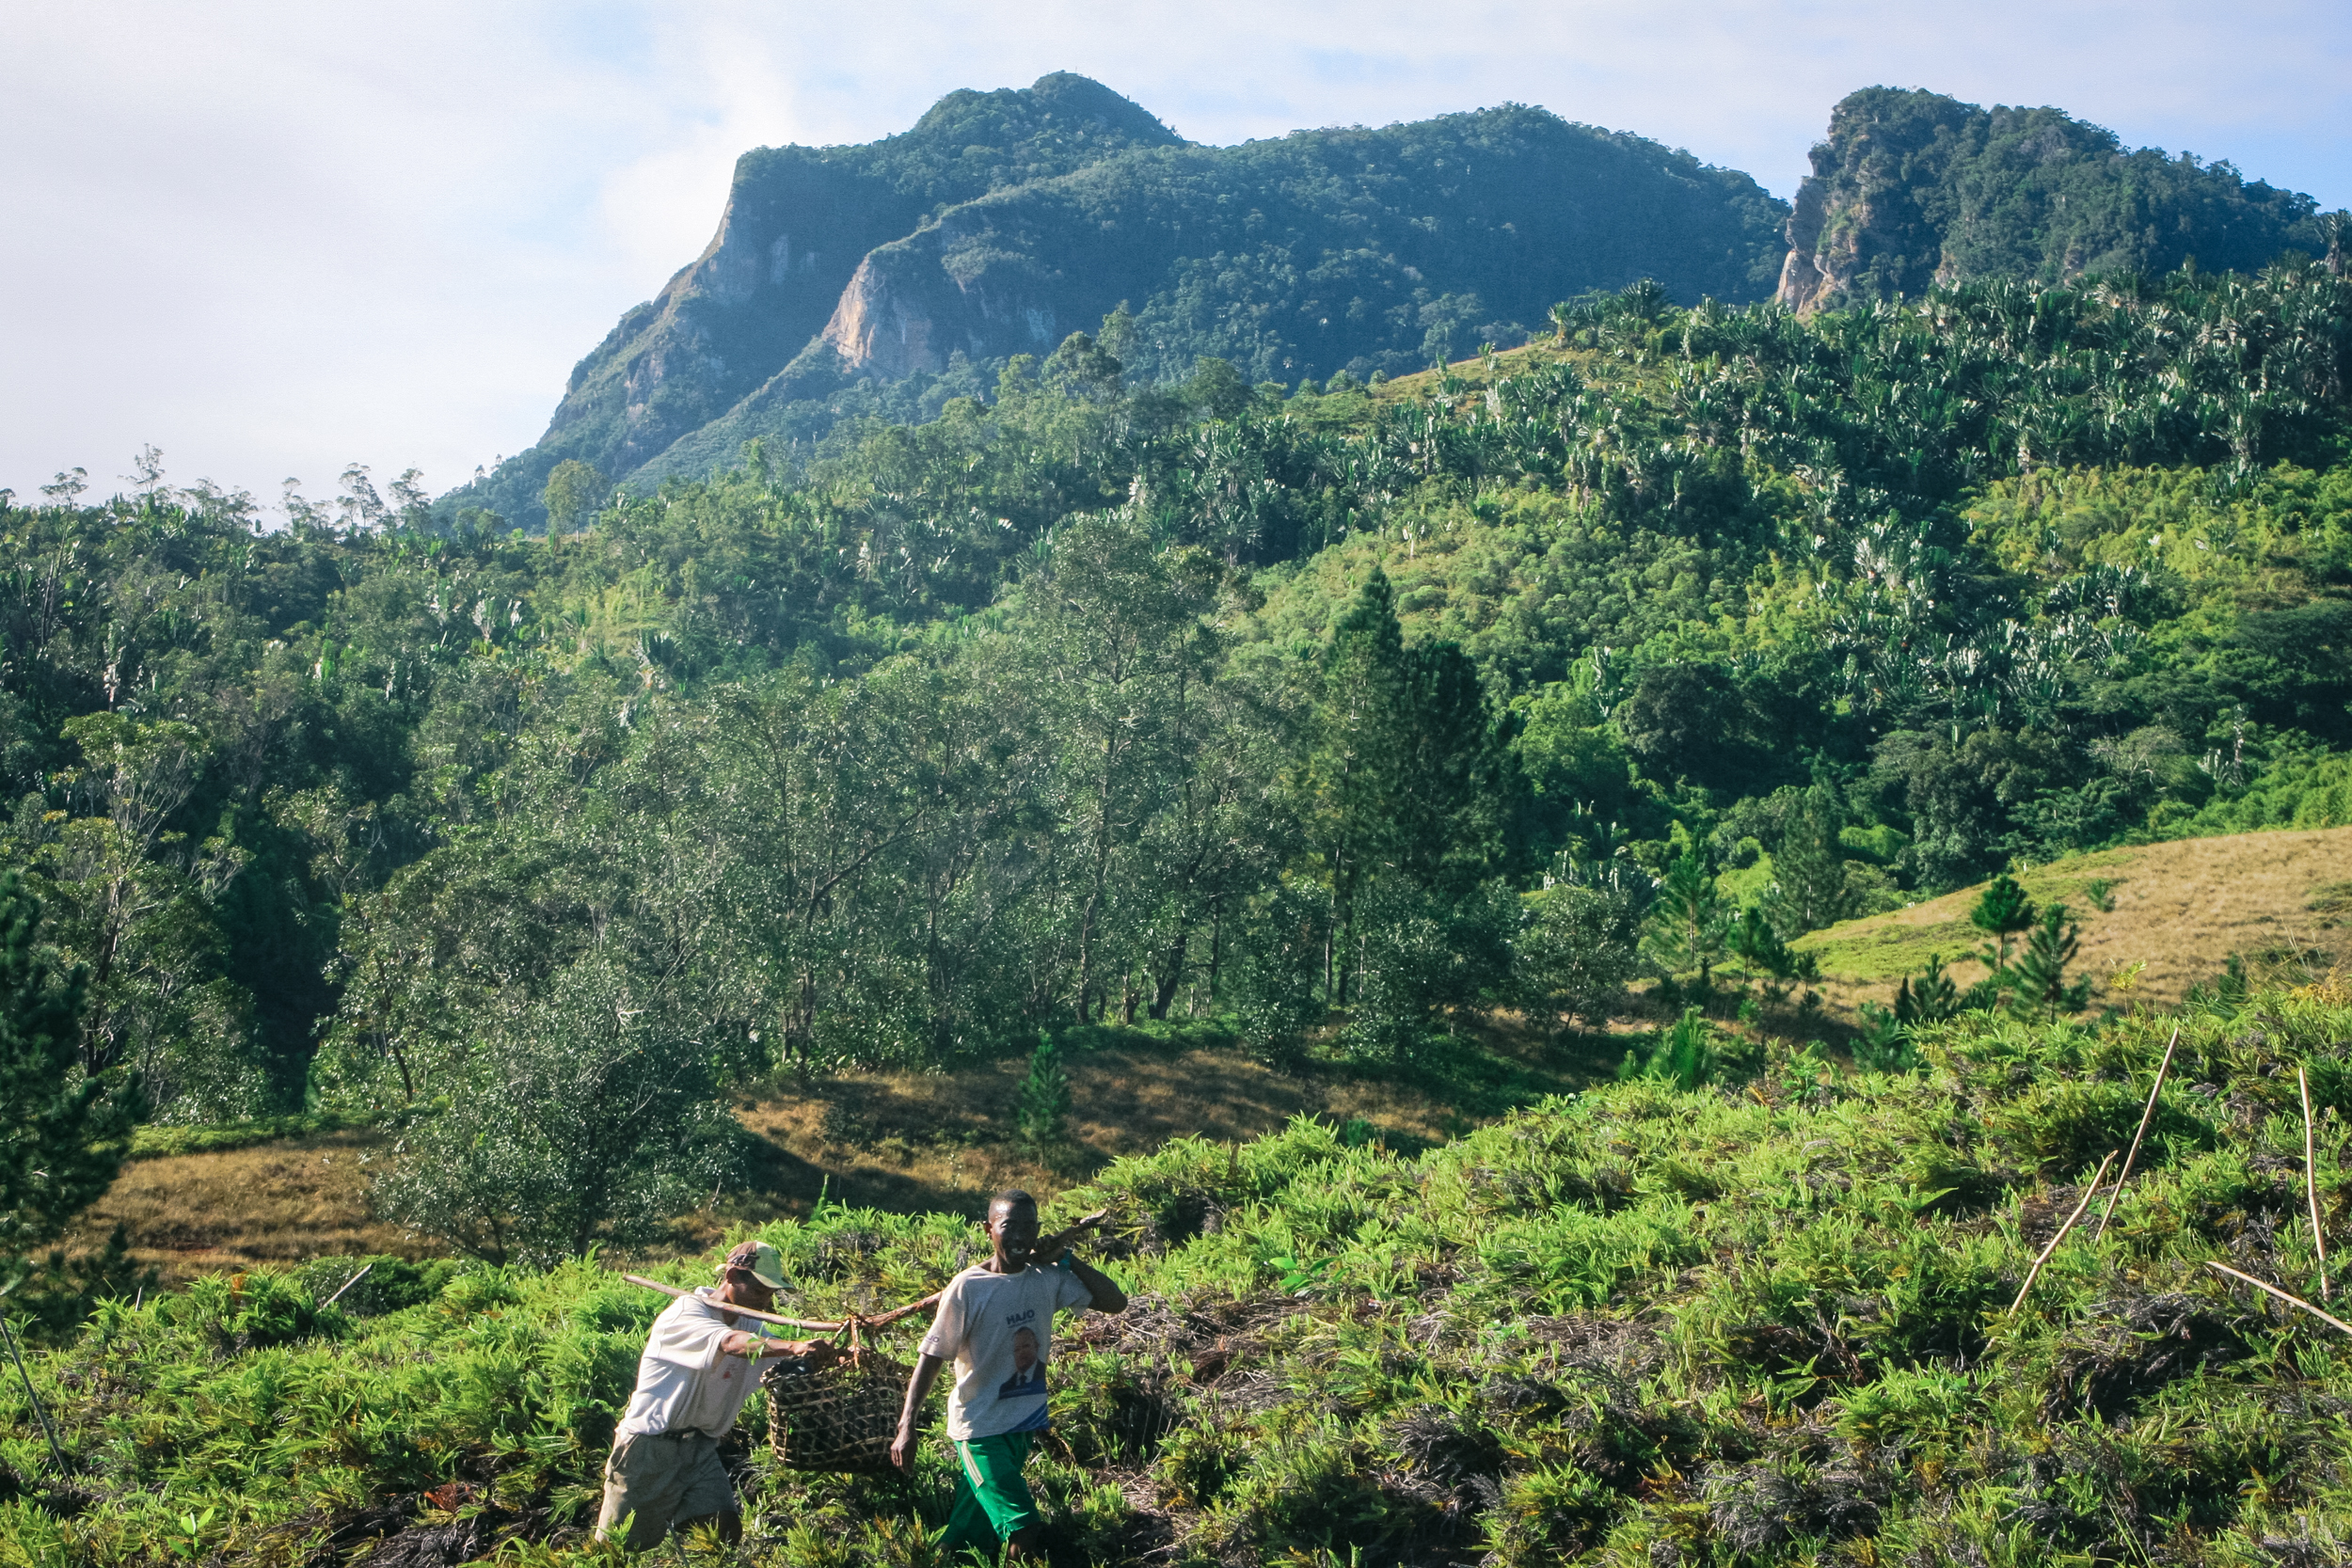 Planting Trees in Madagascar